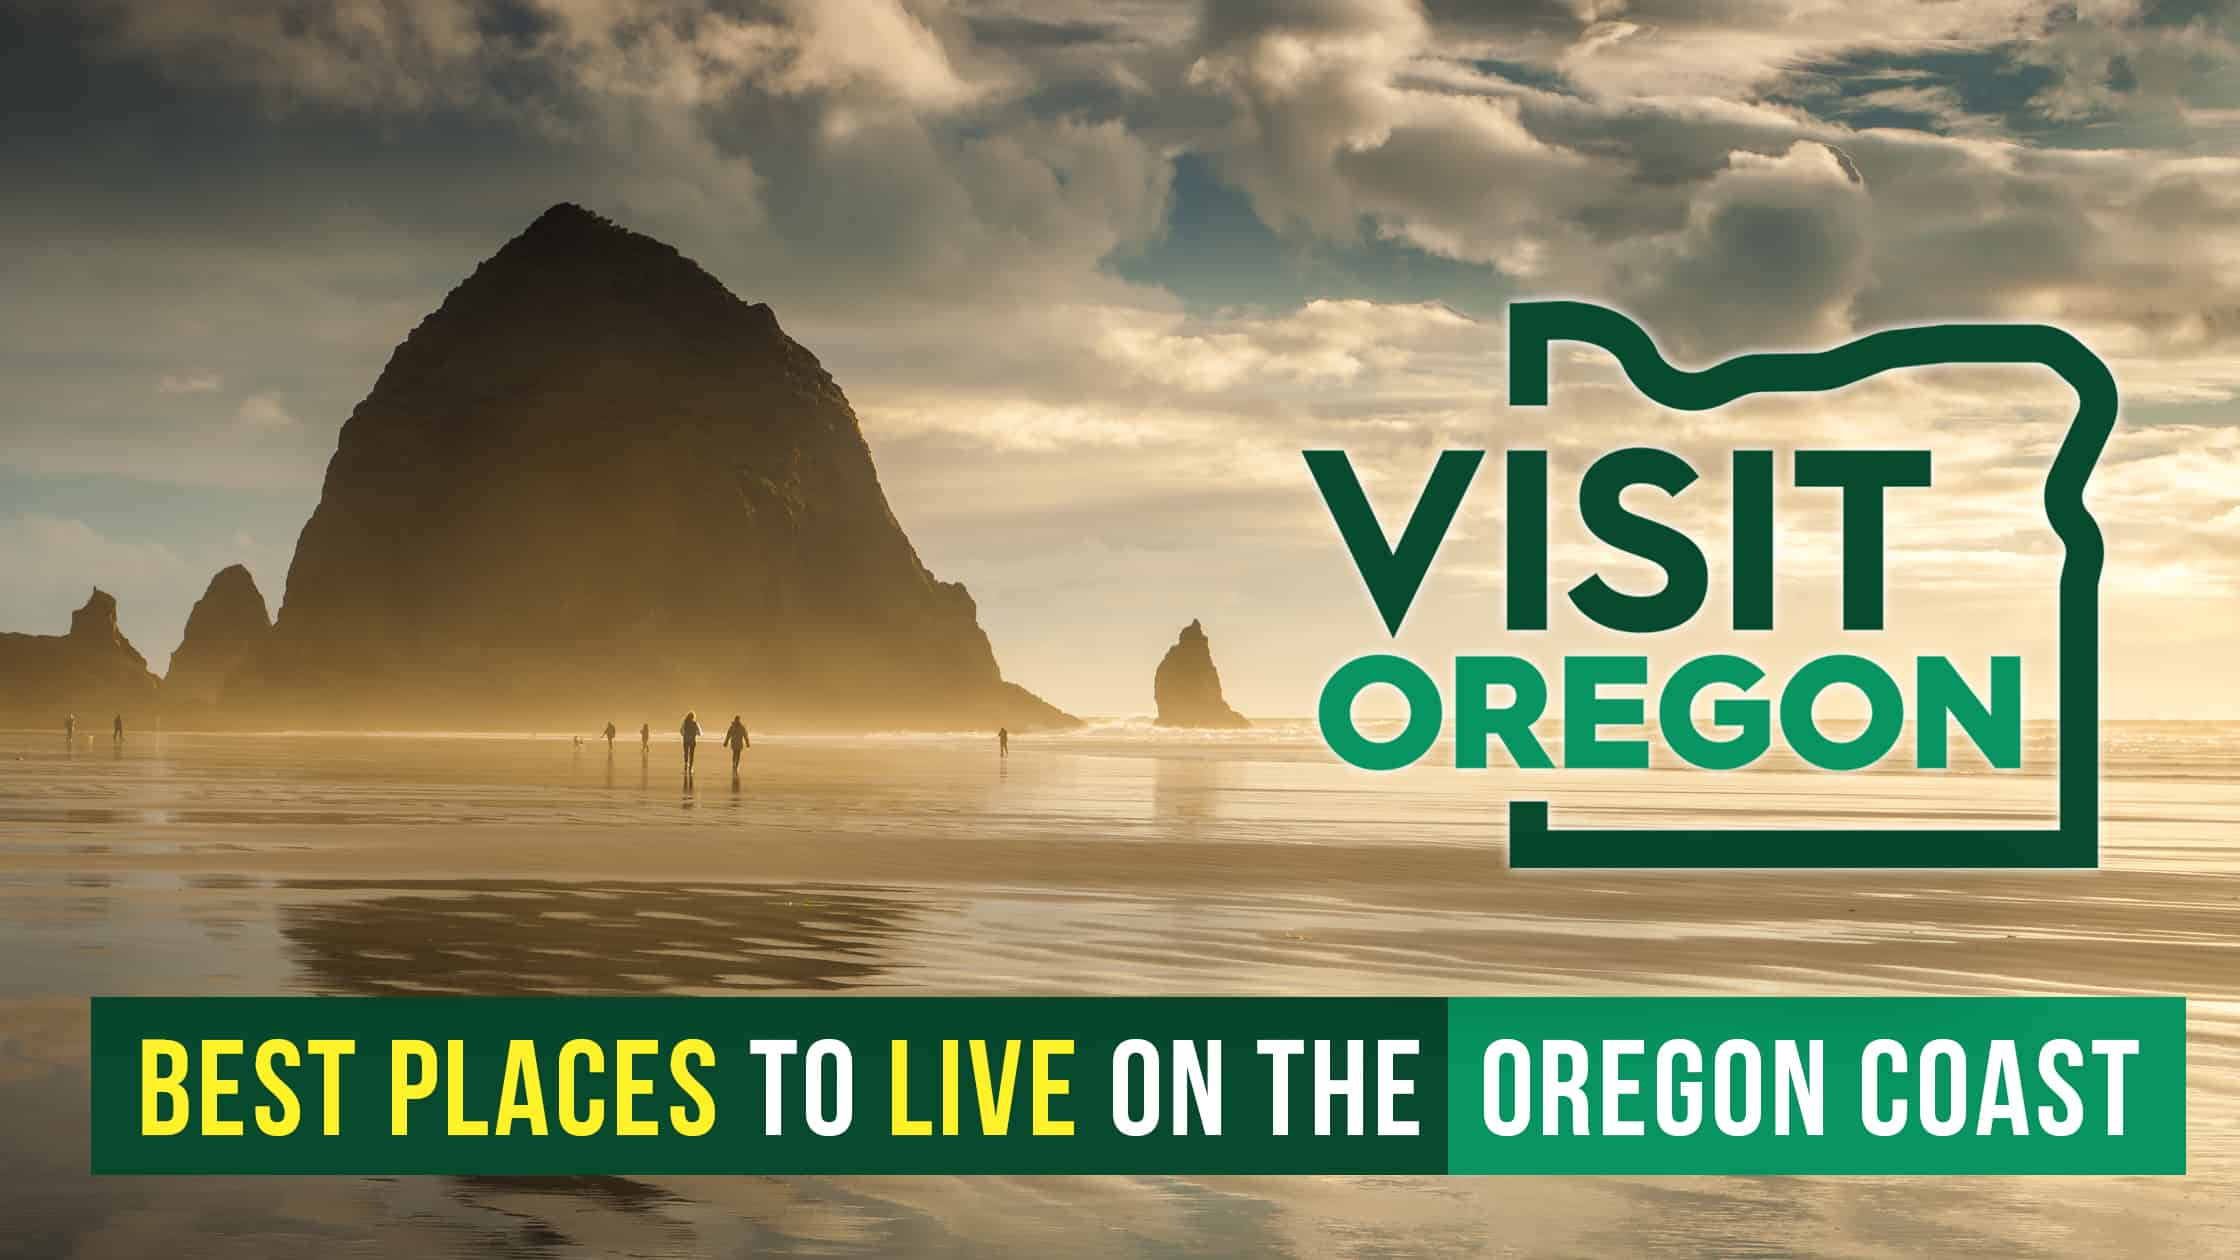 Best Places To Live On The Oregon Coast